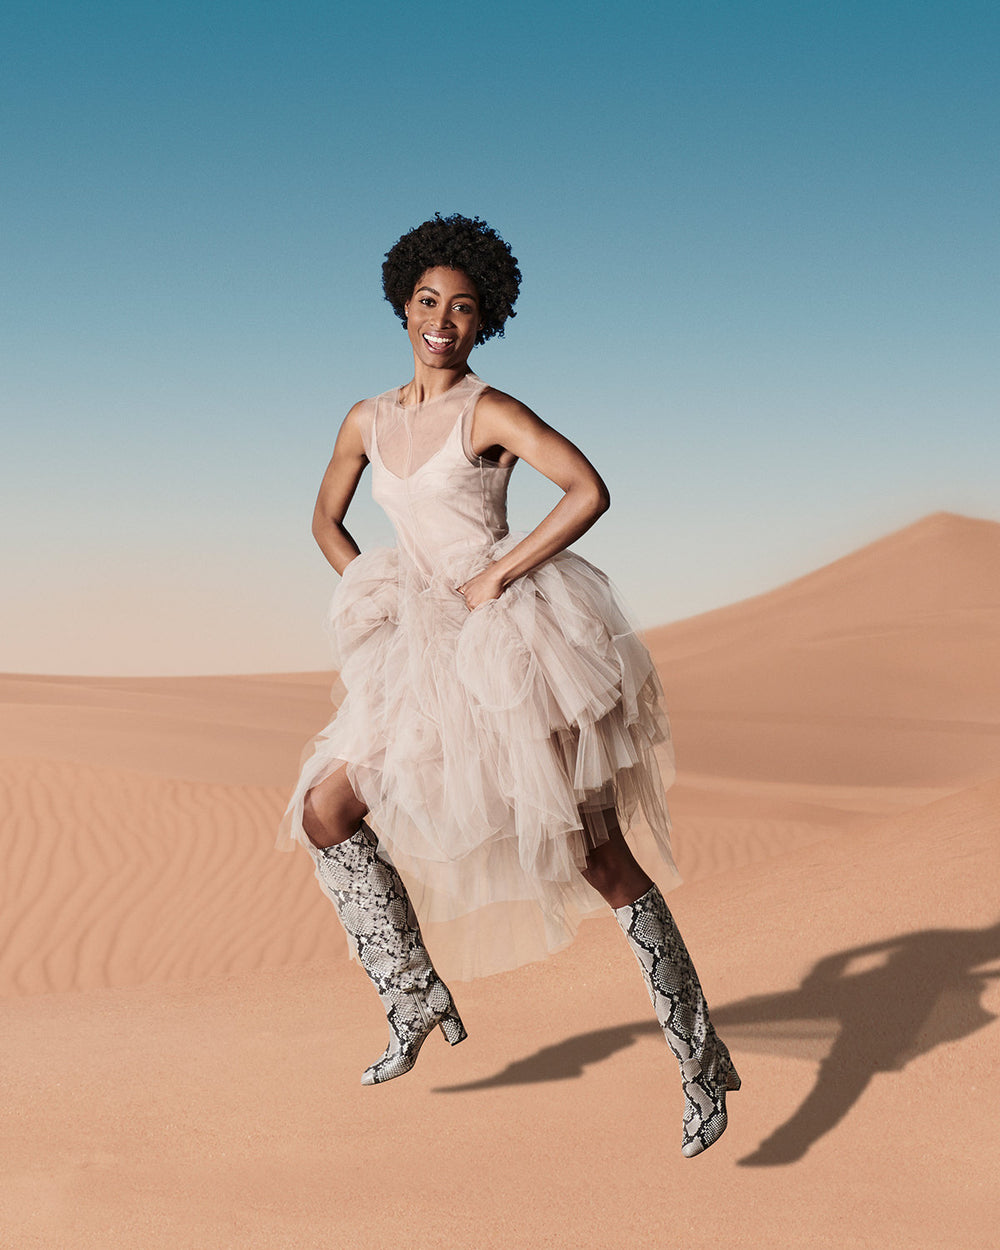 Aera Campaign. Women jumping in the desert with Giselle boots.